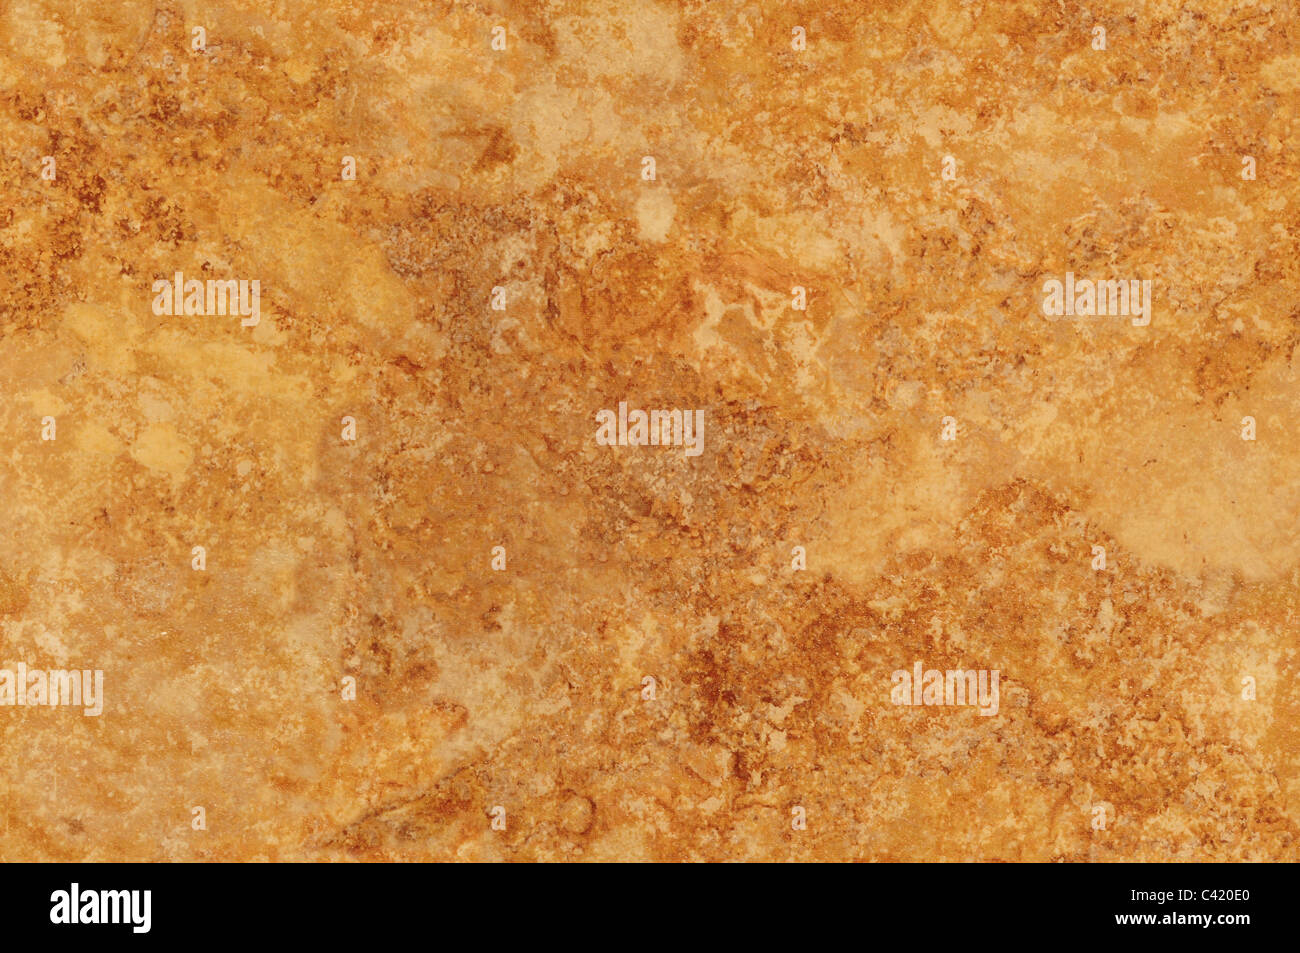 Brown mottled background surface texture - Stock Image